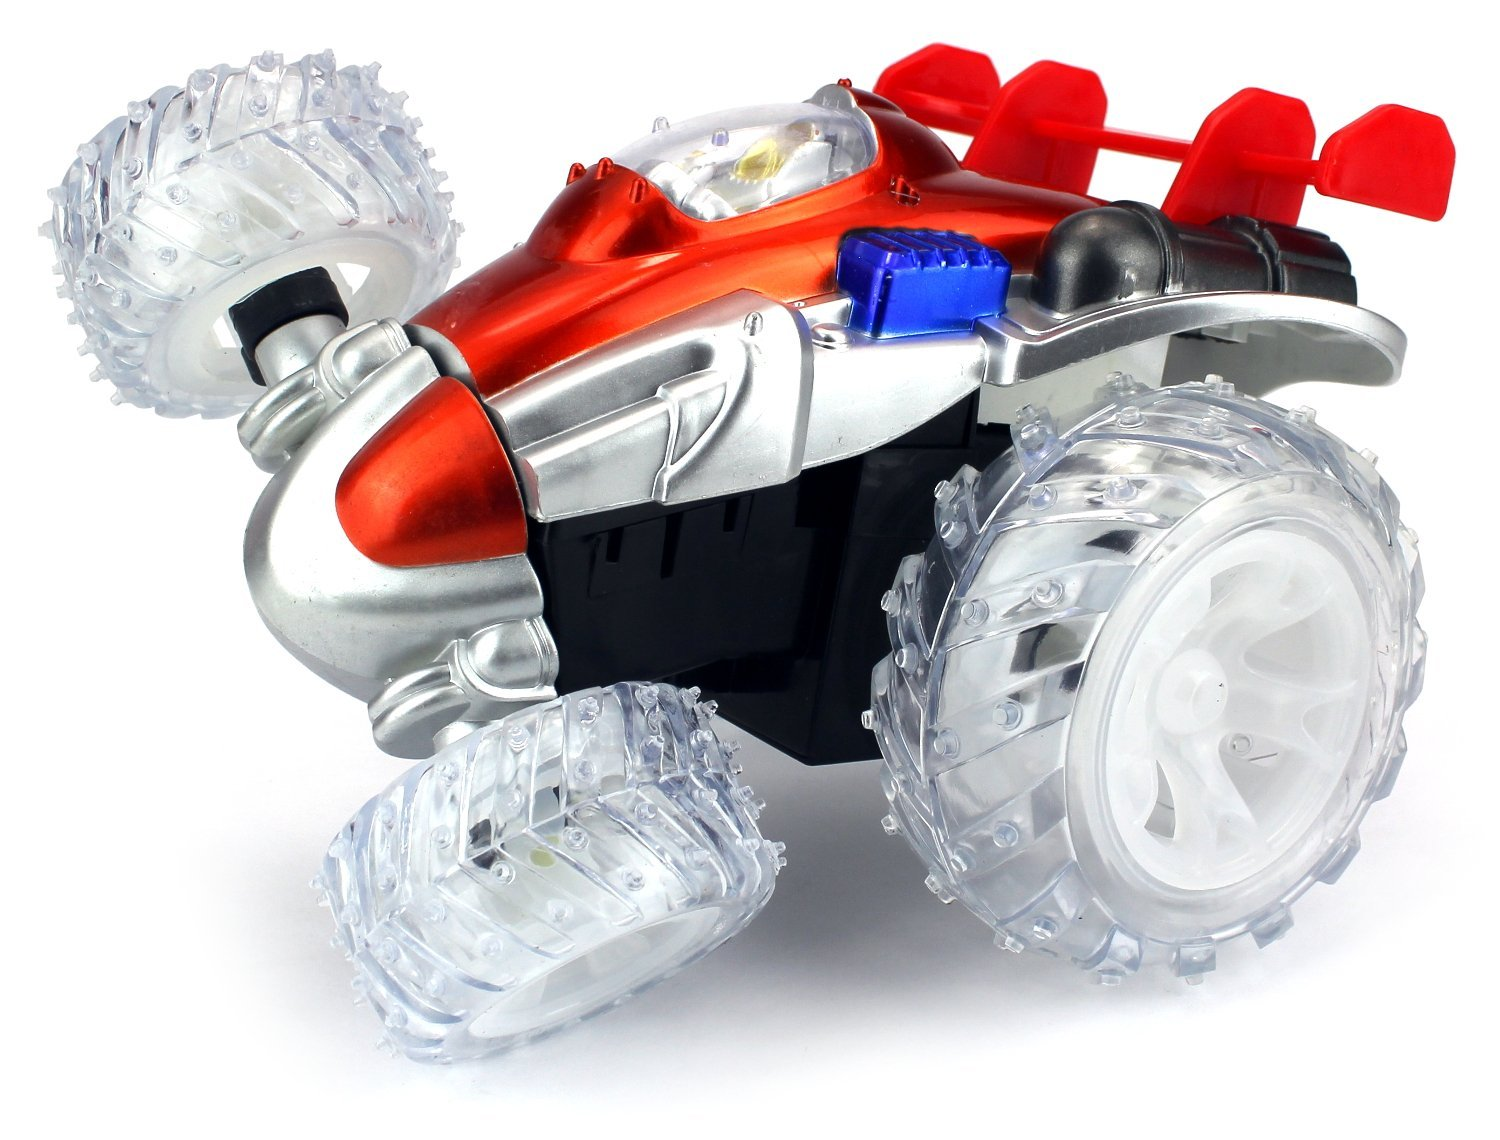 VT Stunt Rocket Remote Control RC Stunt Rolling Car Ready To Run RTR w  360 Degree... by Velocity Toys